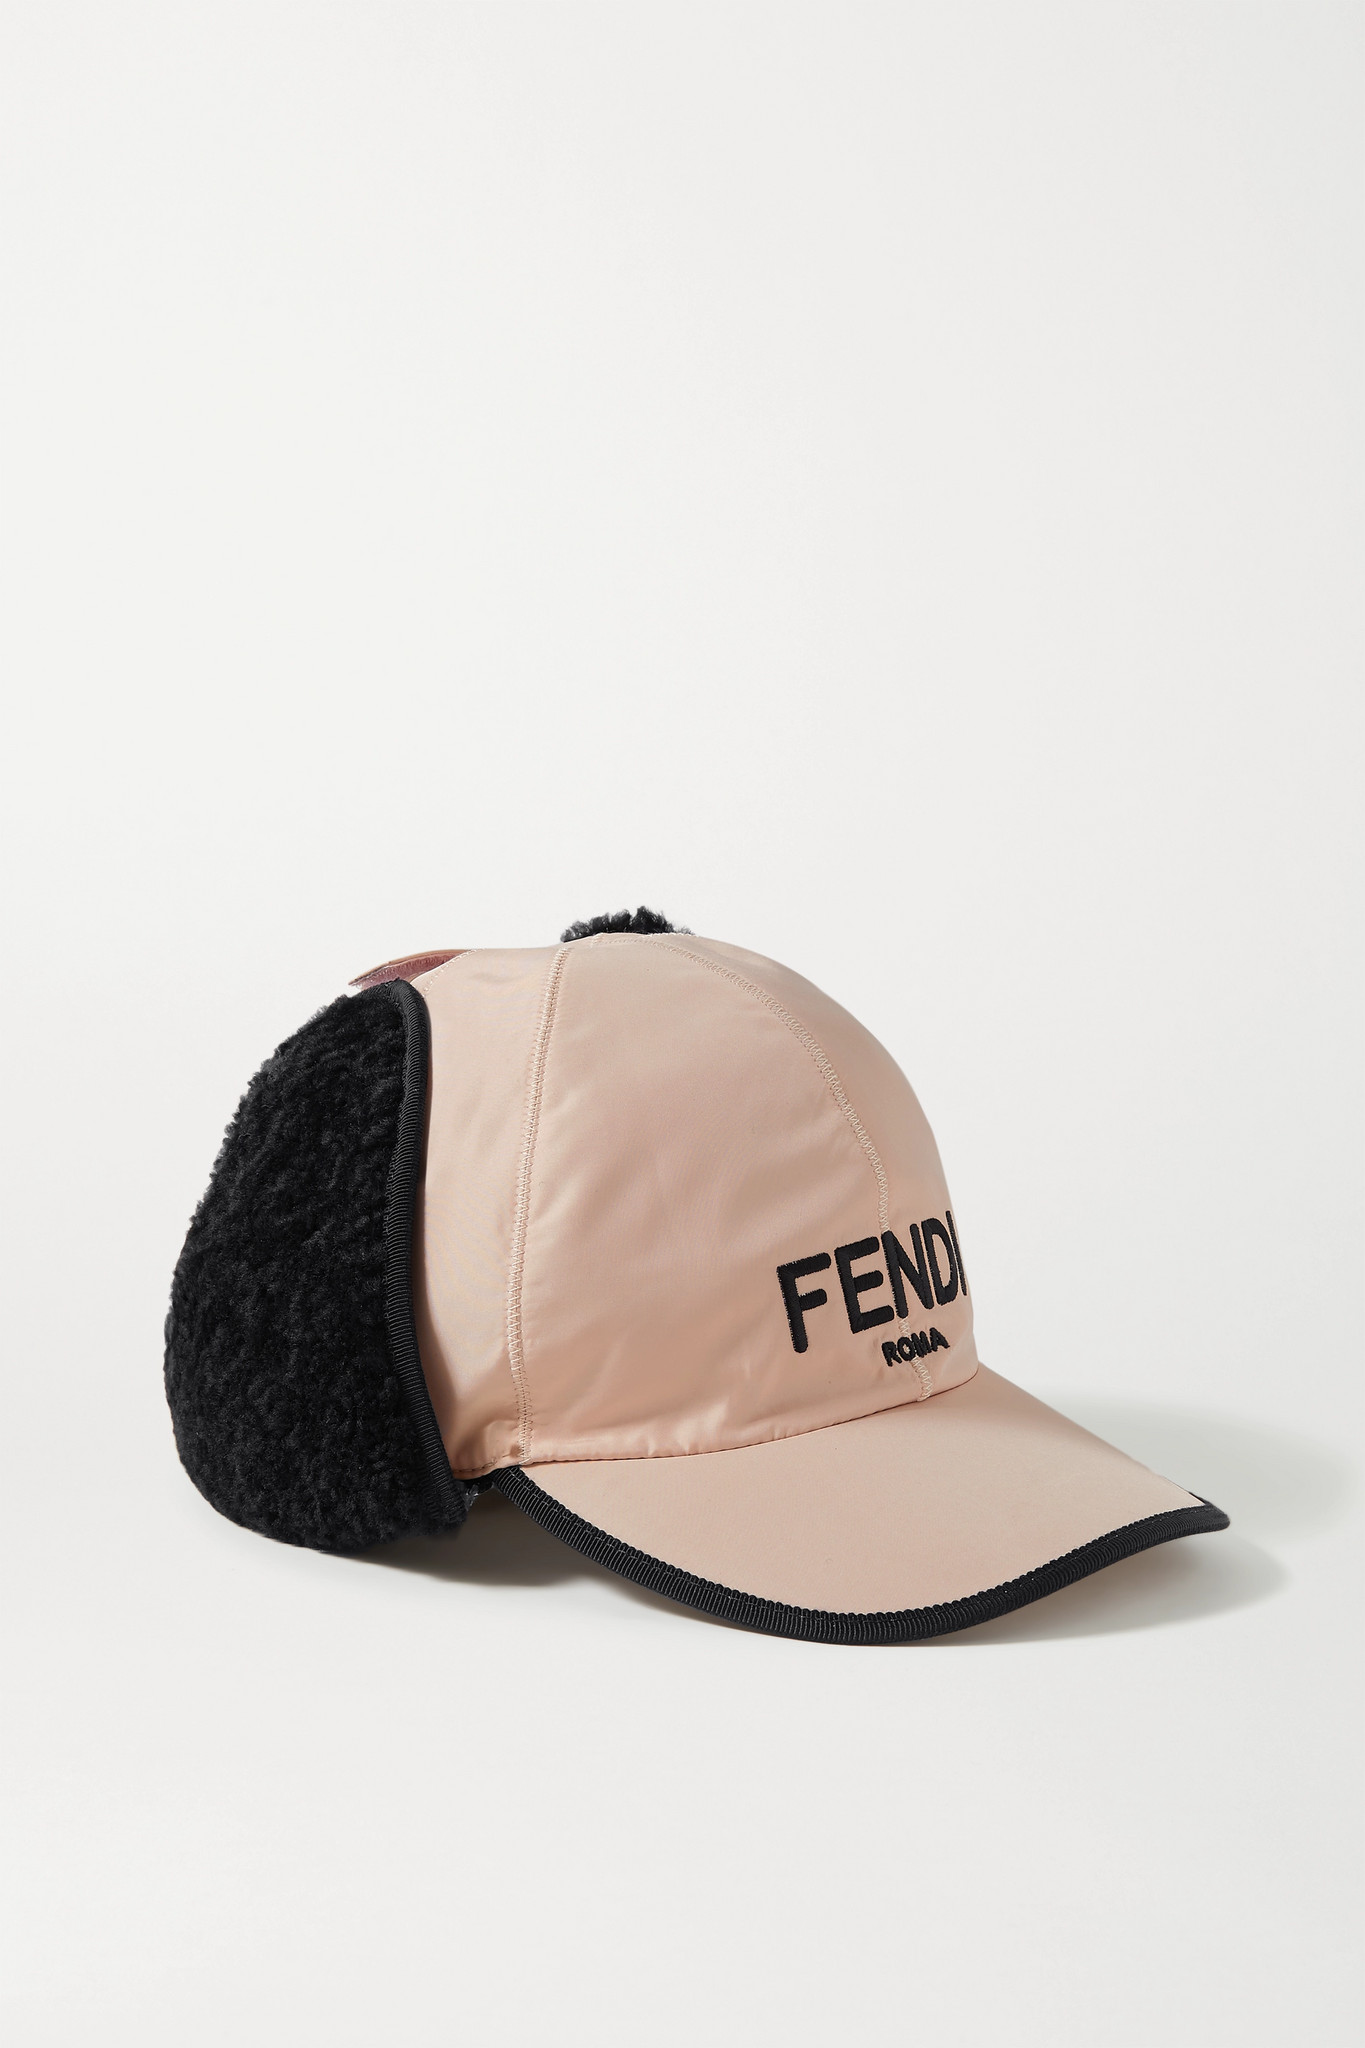 FENDI - Shearling-trimmed Embroidered Shell Baseball Cap - Pink - L